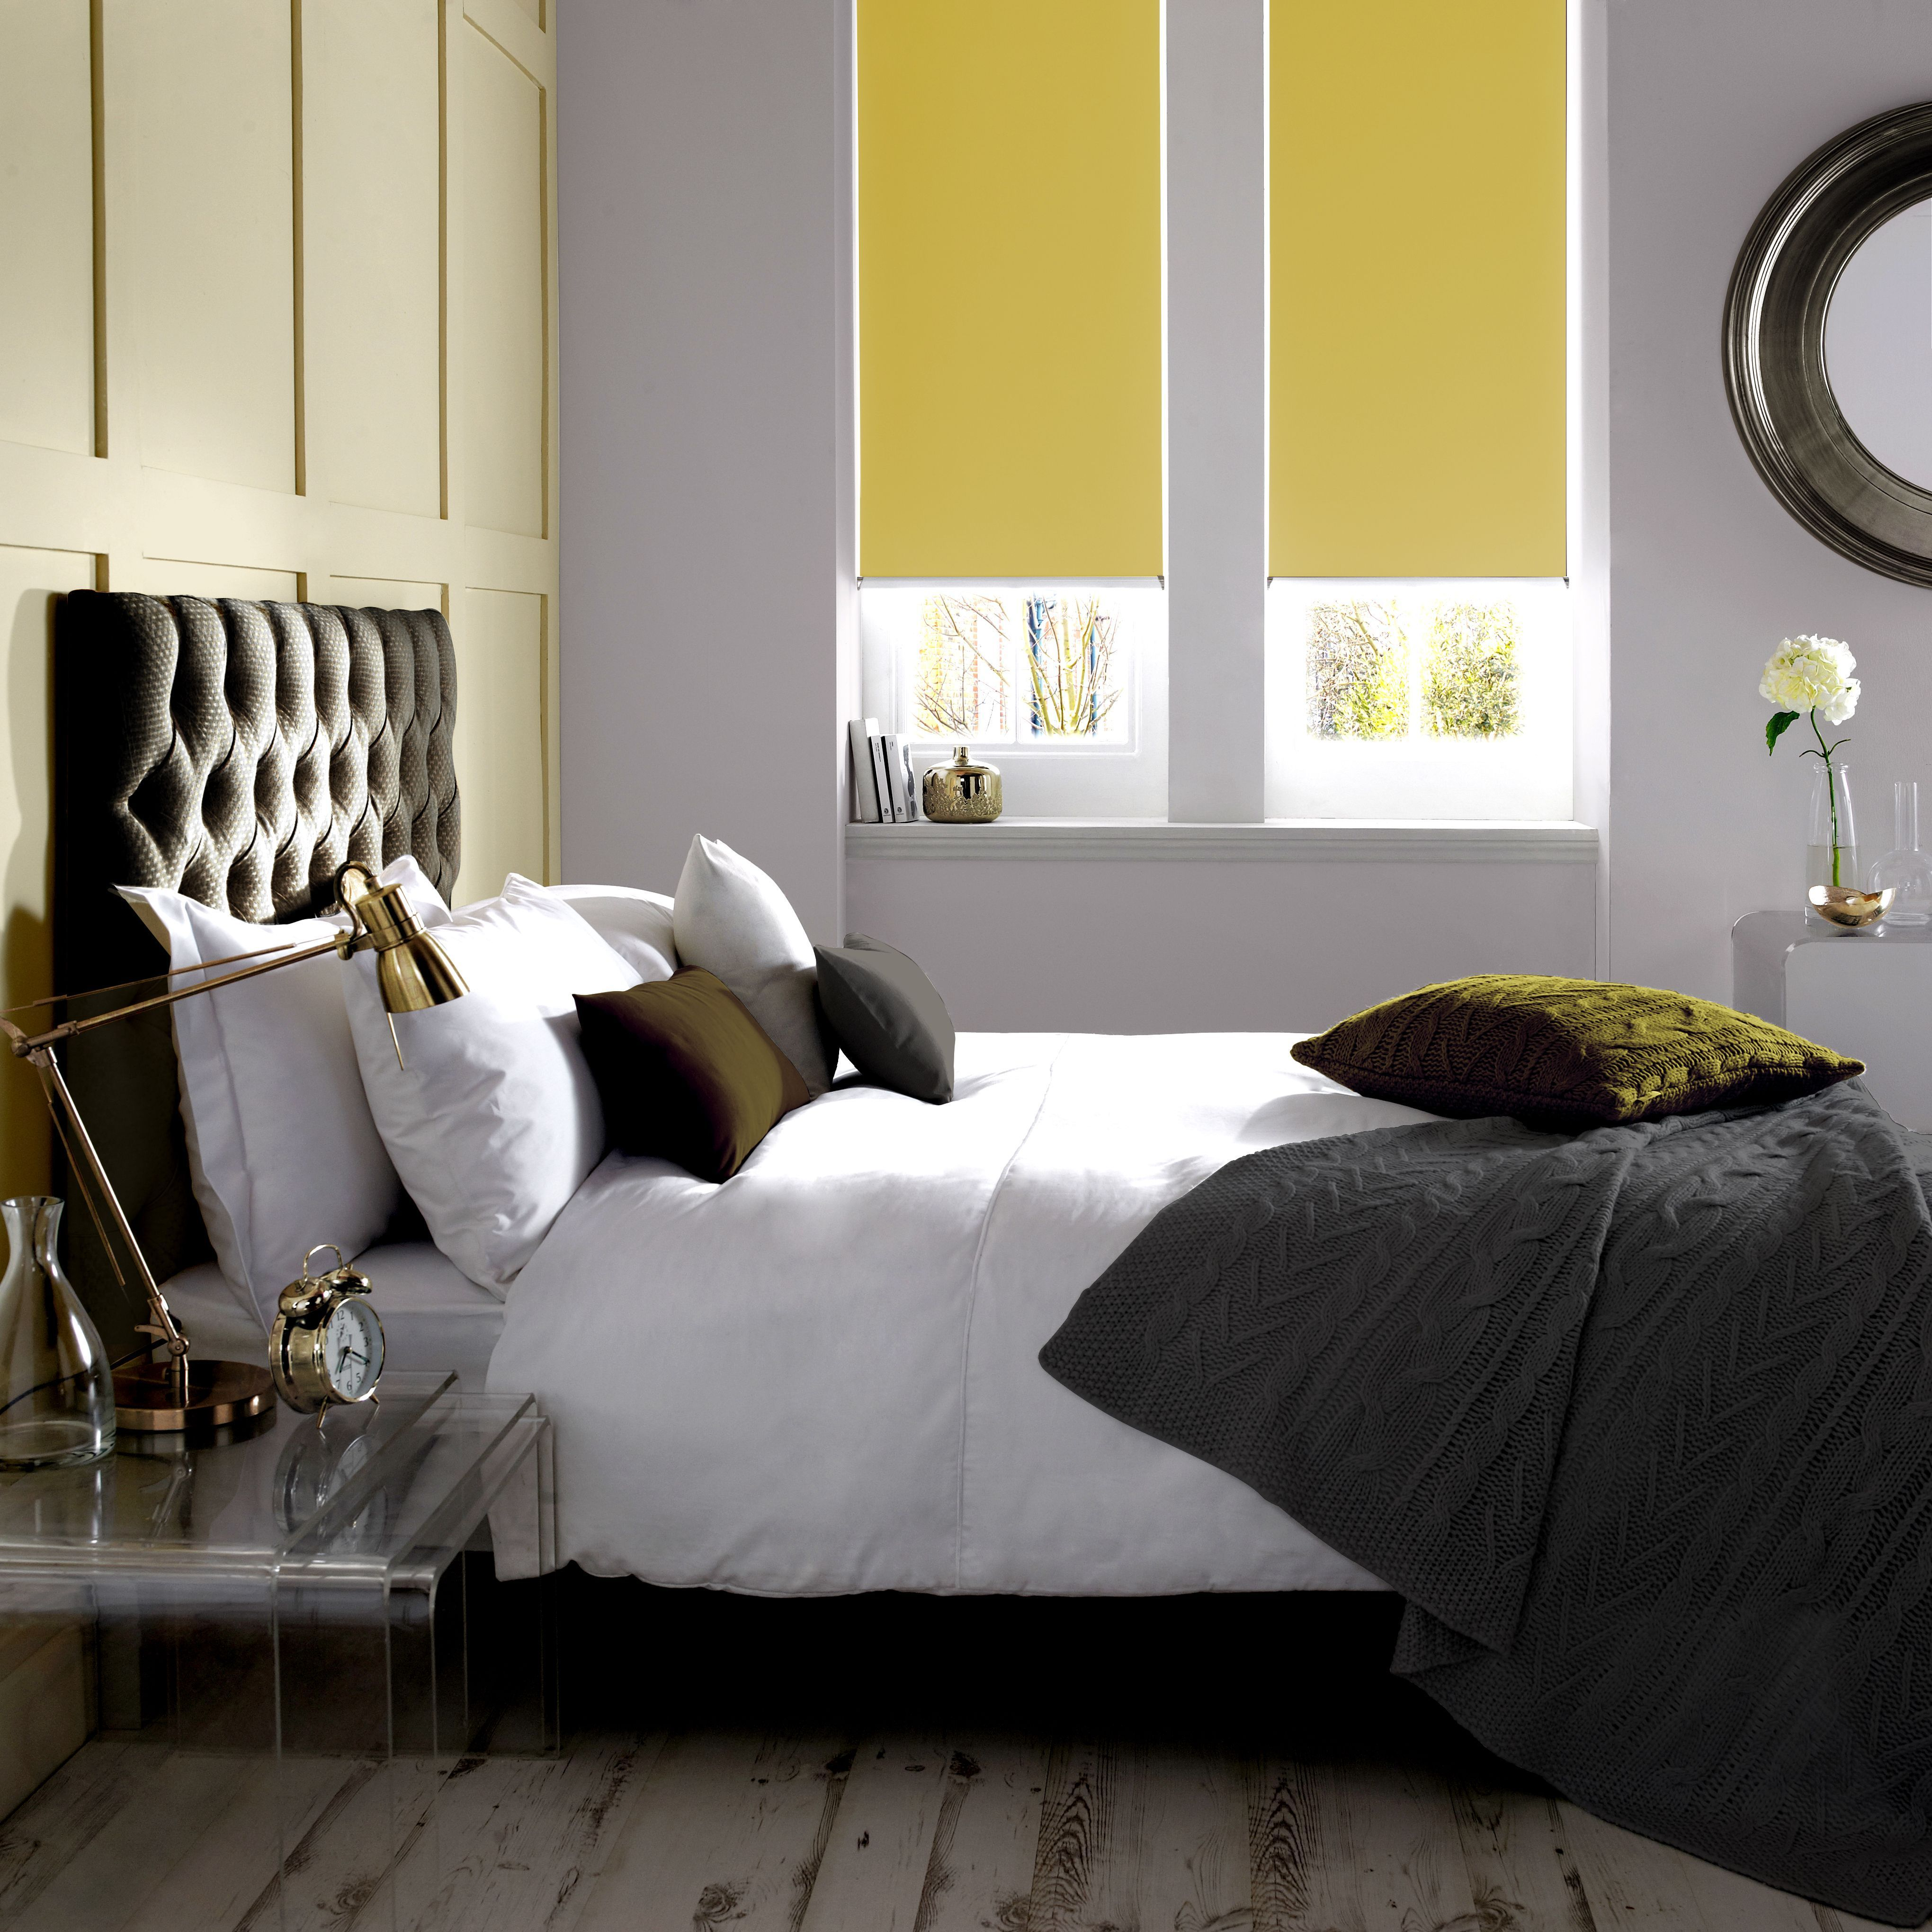 Banlight Duo Roller Blinds From Style Studio Yellow Blinds Roller Blinds Bedroom Blinds Contemporary Living Room Blinds Curtains With Blinds Bedroom Blinds